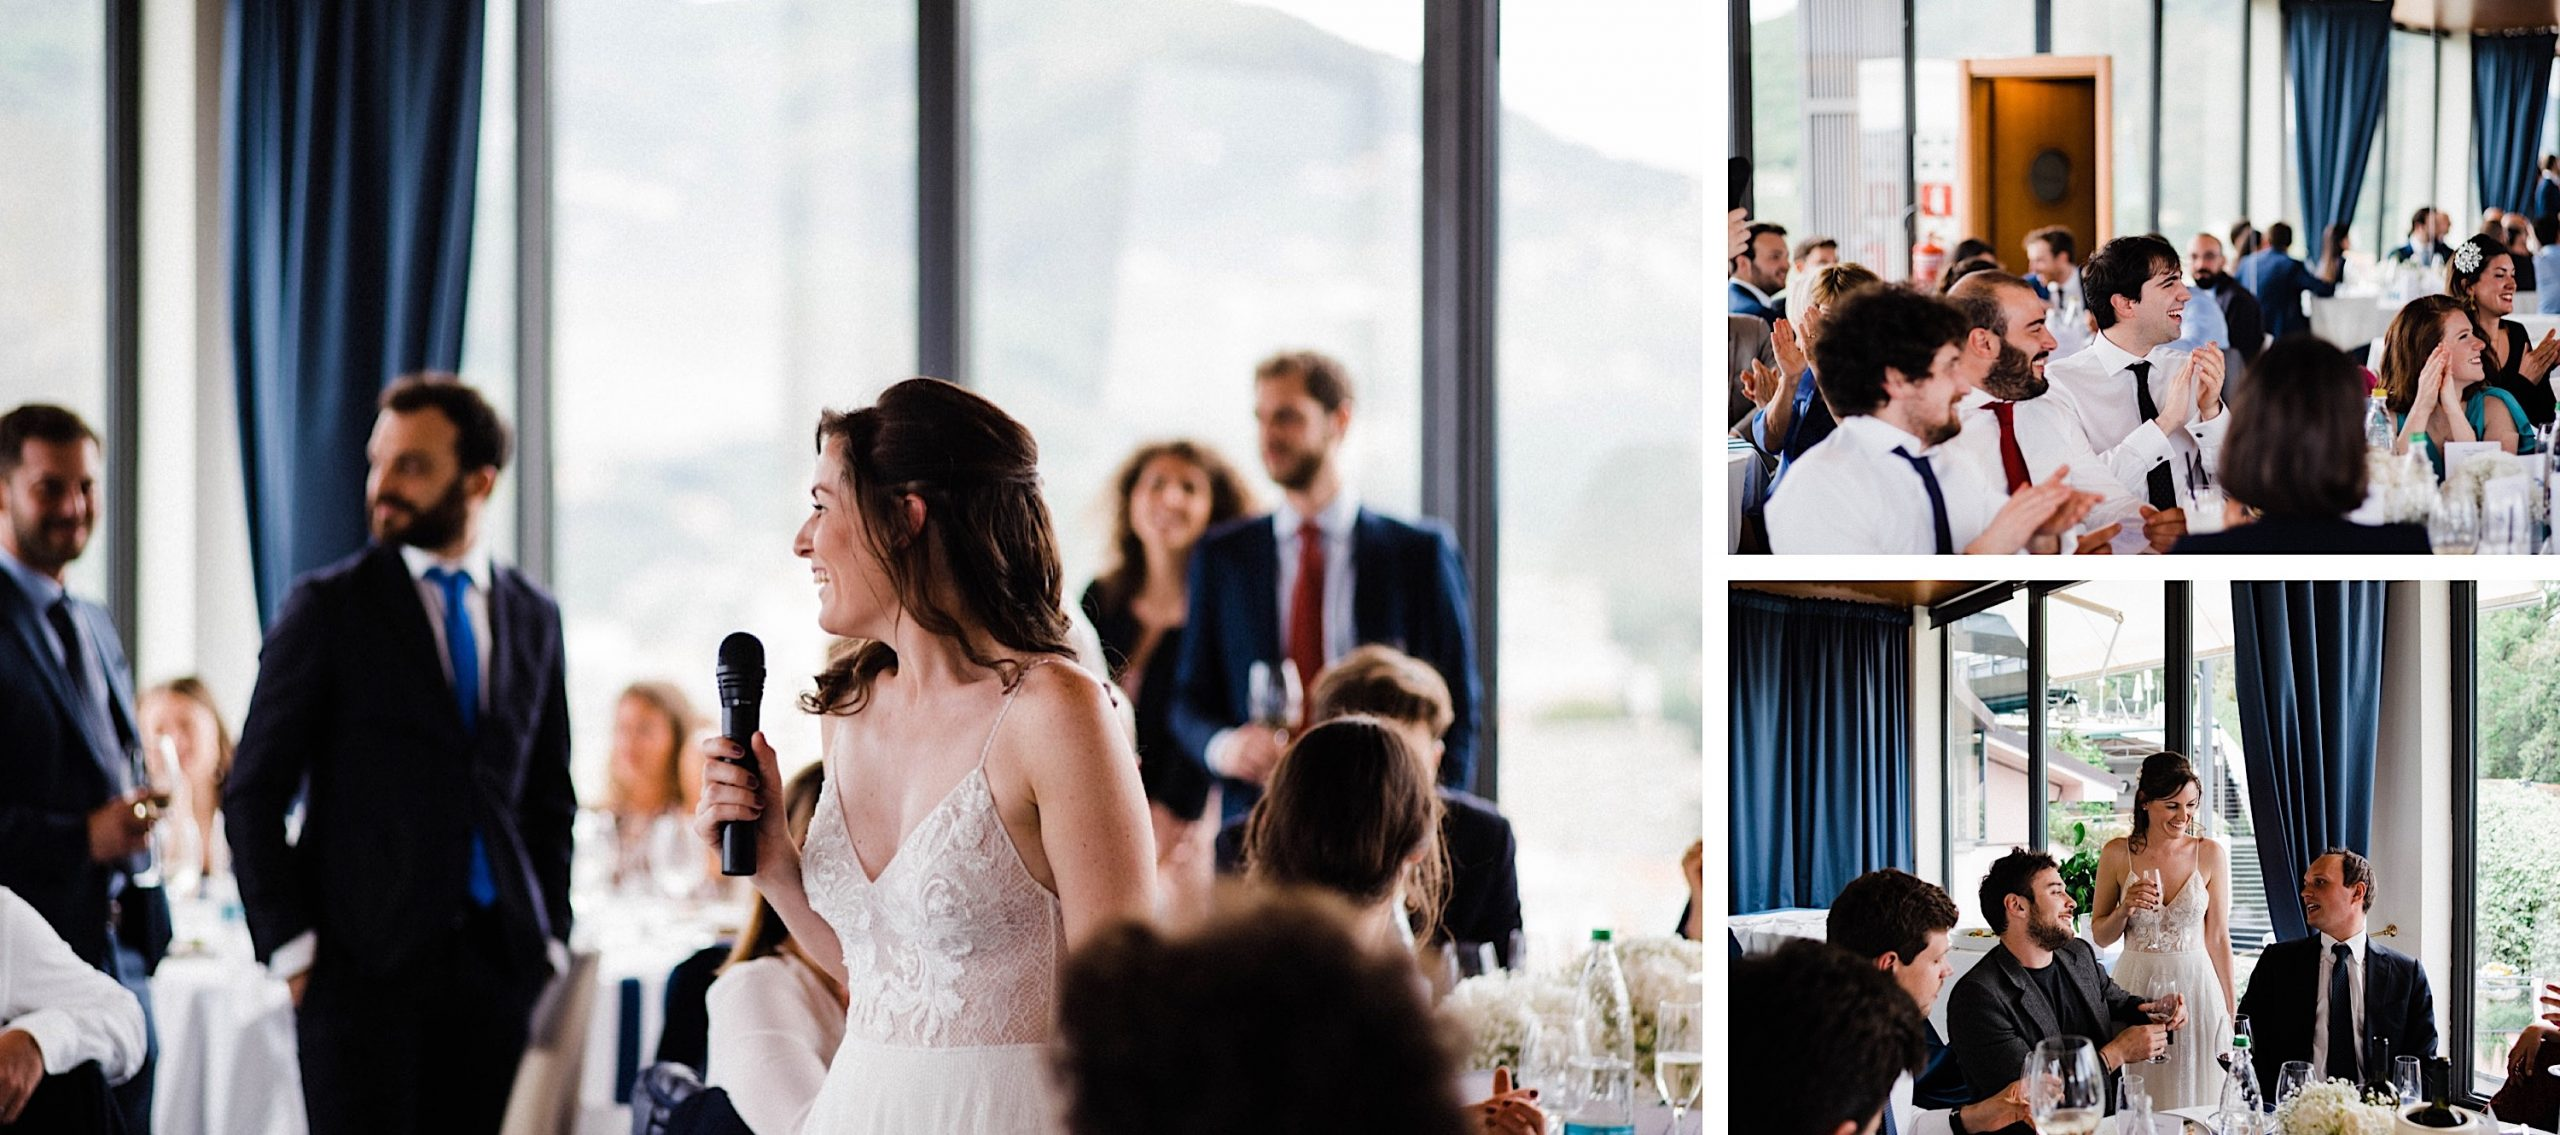 Three photos taken at a Wedding Reception in Sestri Levante, of the bride during her speech and guests reactions.